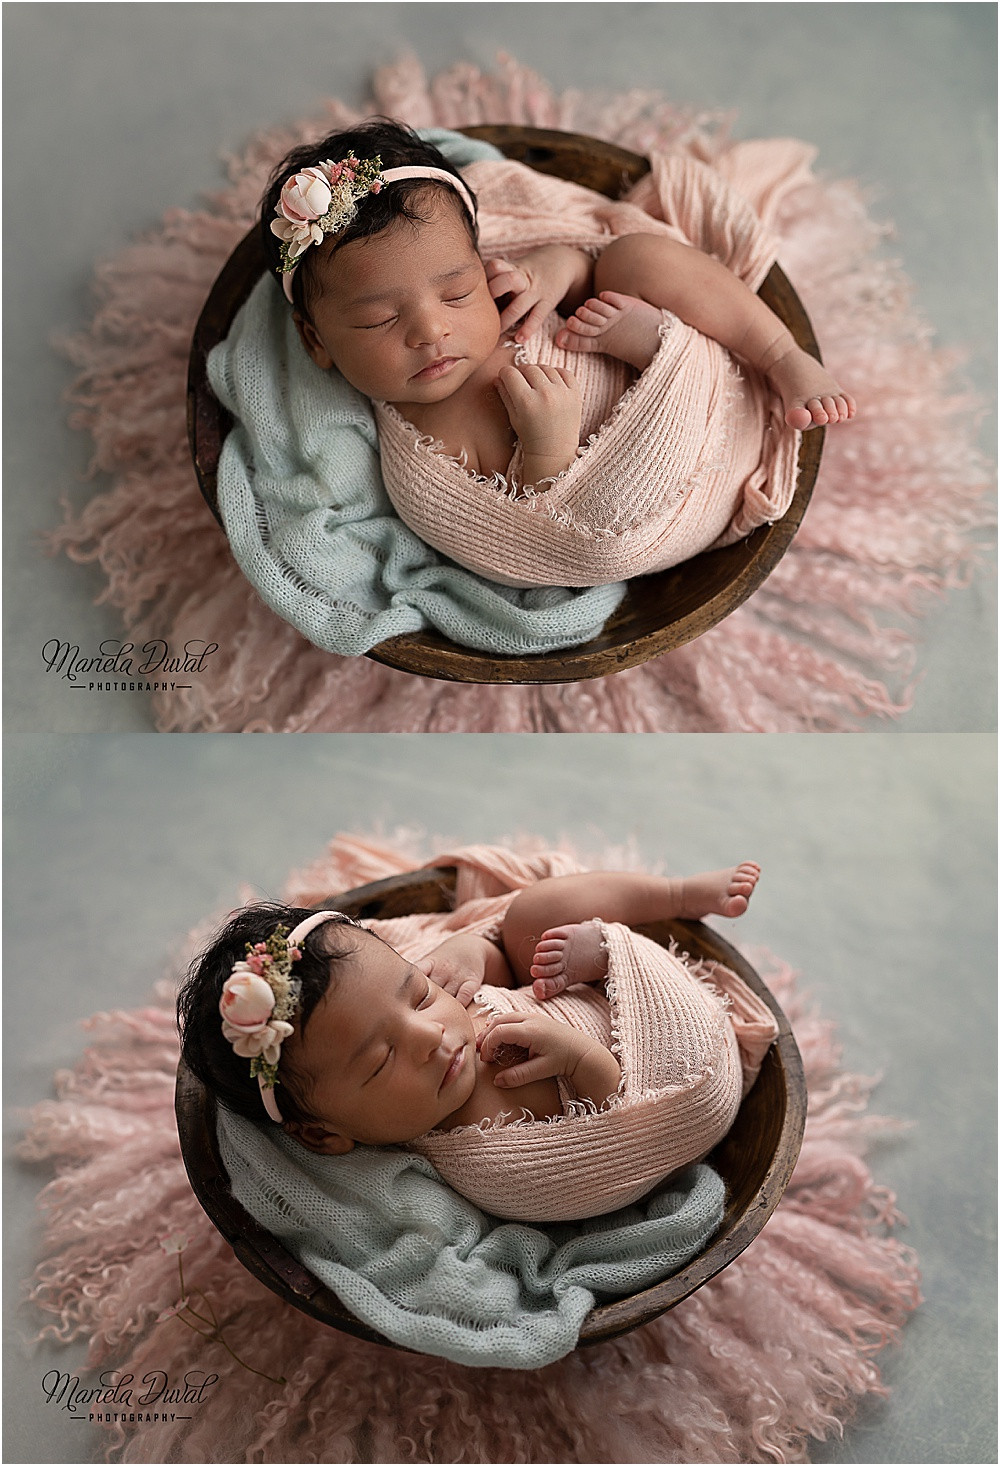 Newborn girl laying in a bowl wrapped in pink and seafoam green to compliment her nursery colors.